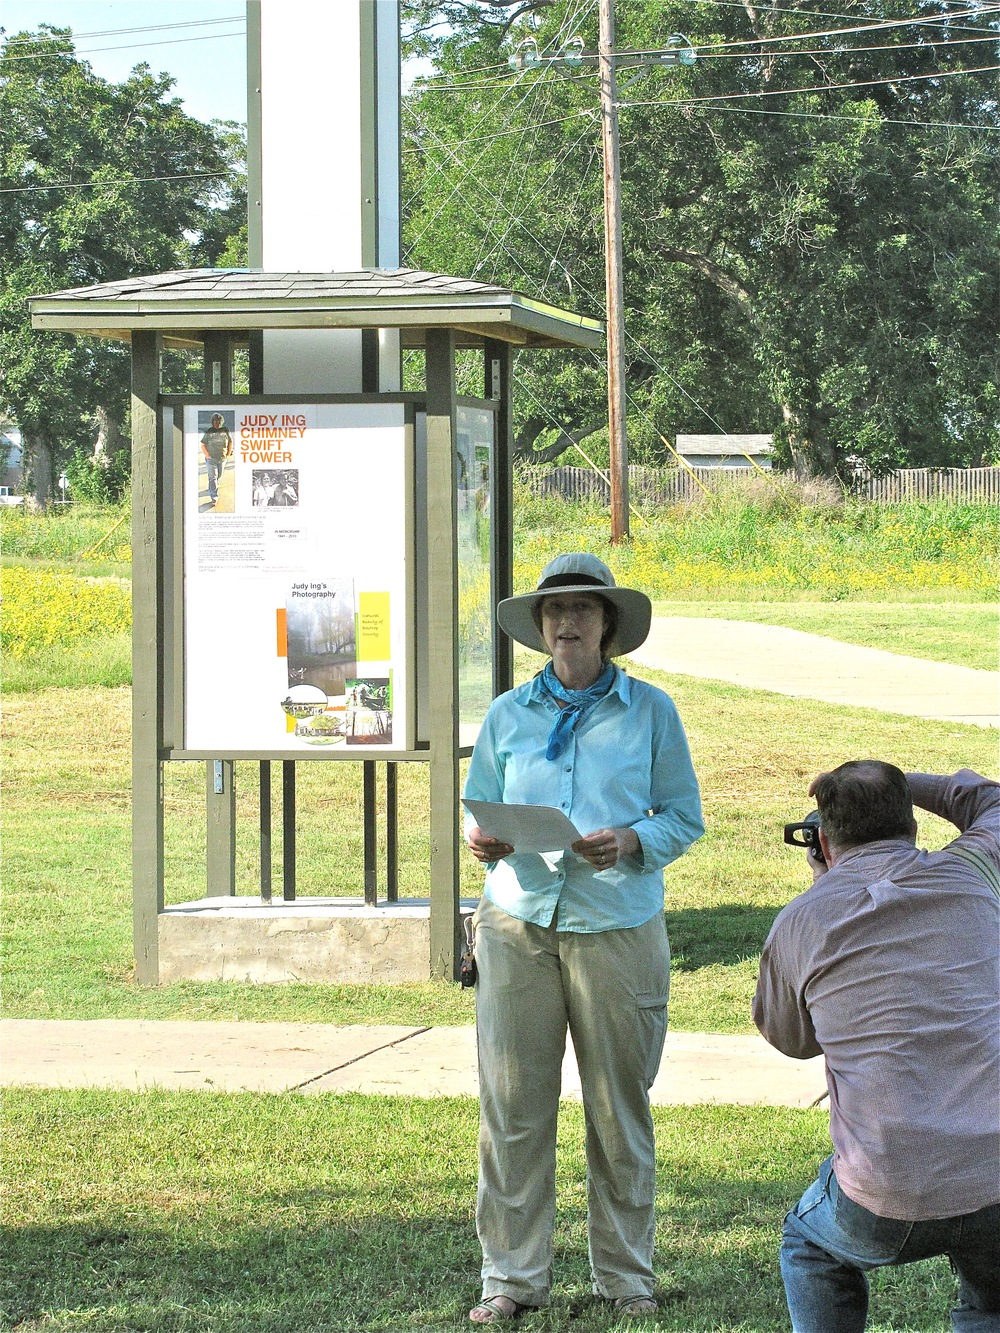 Official opening of Judy Ing Memorial Chimney Swift Tower, Bastrop's Bob Bryant Park